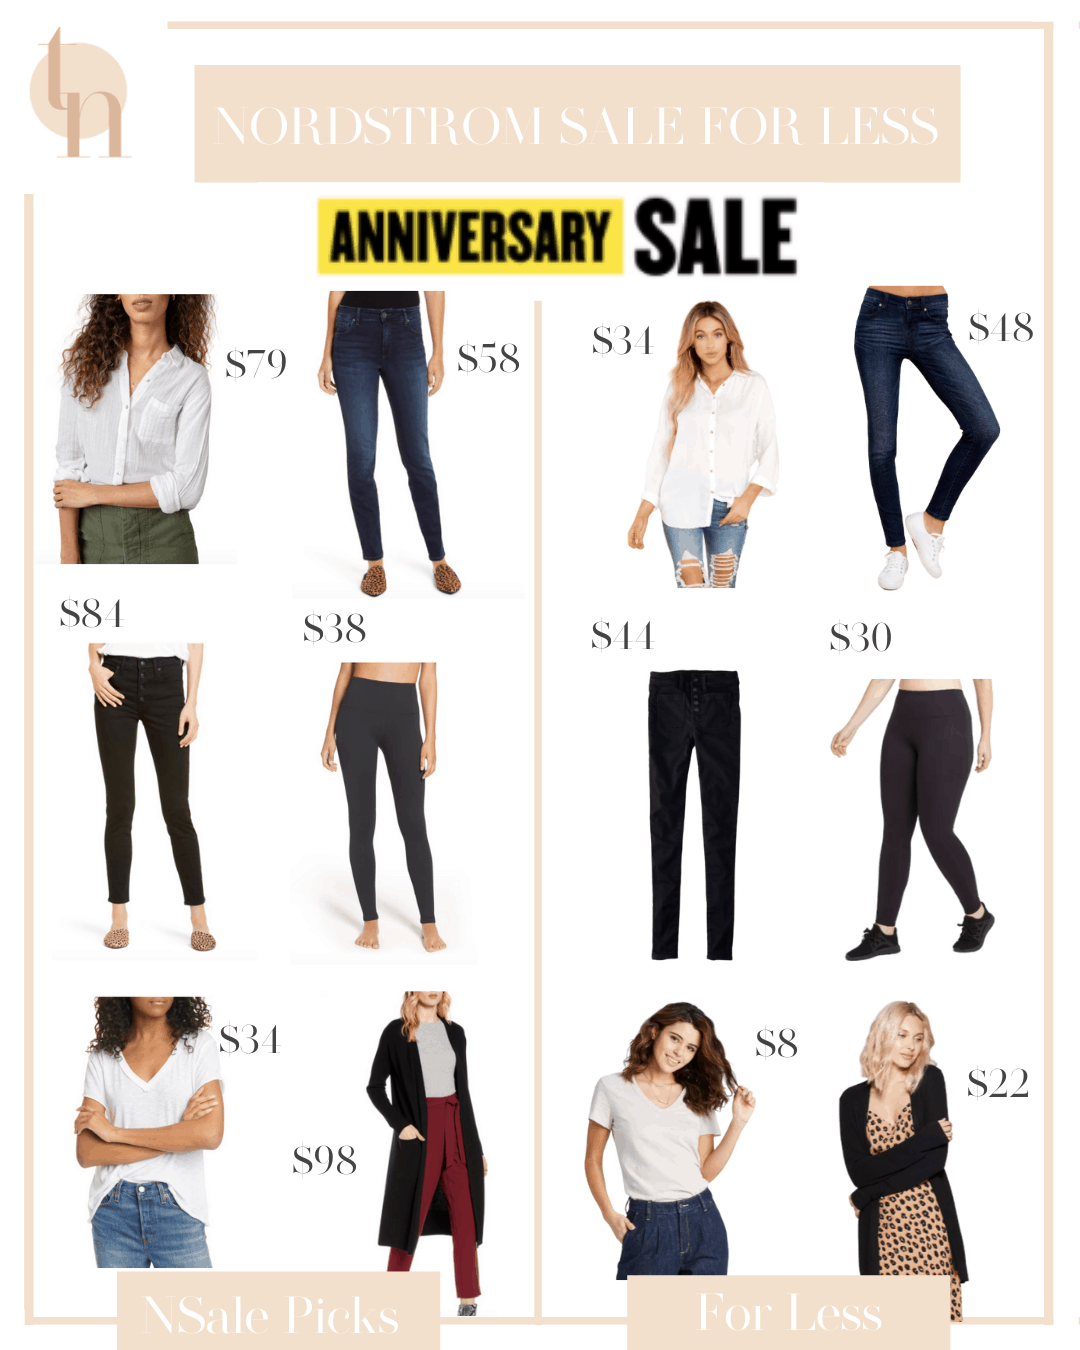 Nordstrom Anniversary Sale by popular Dallas fashion blog, Glamorous Versatility: collage image of white button down blouse, skinny jeans, black leggings, white t-shirt, and long black cardigan.